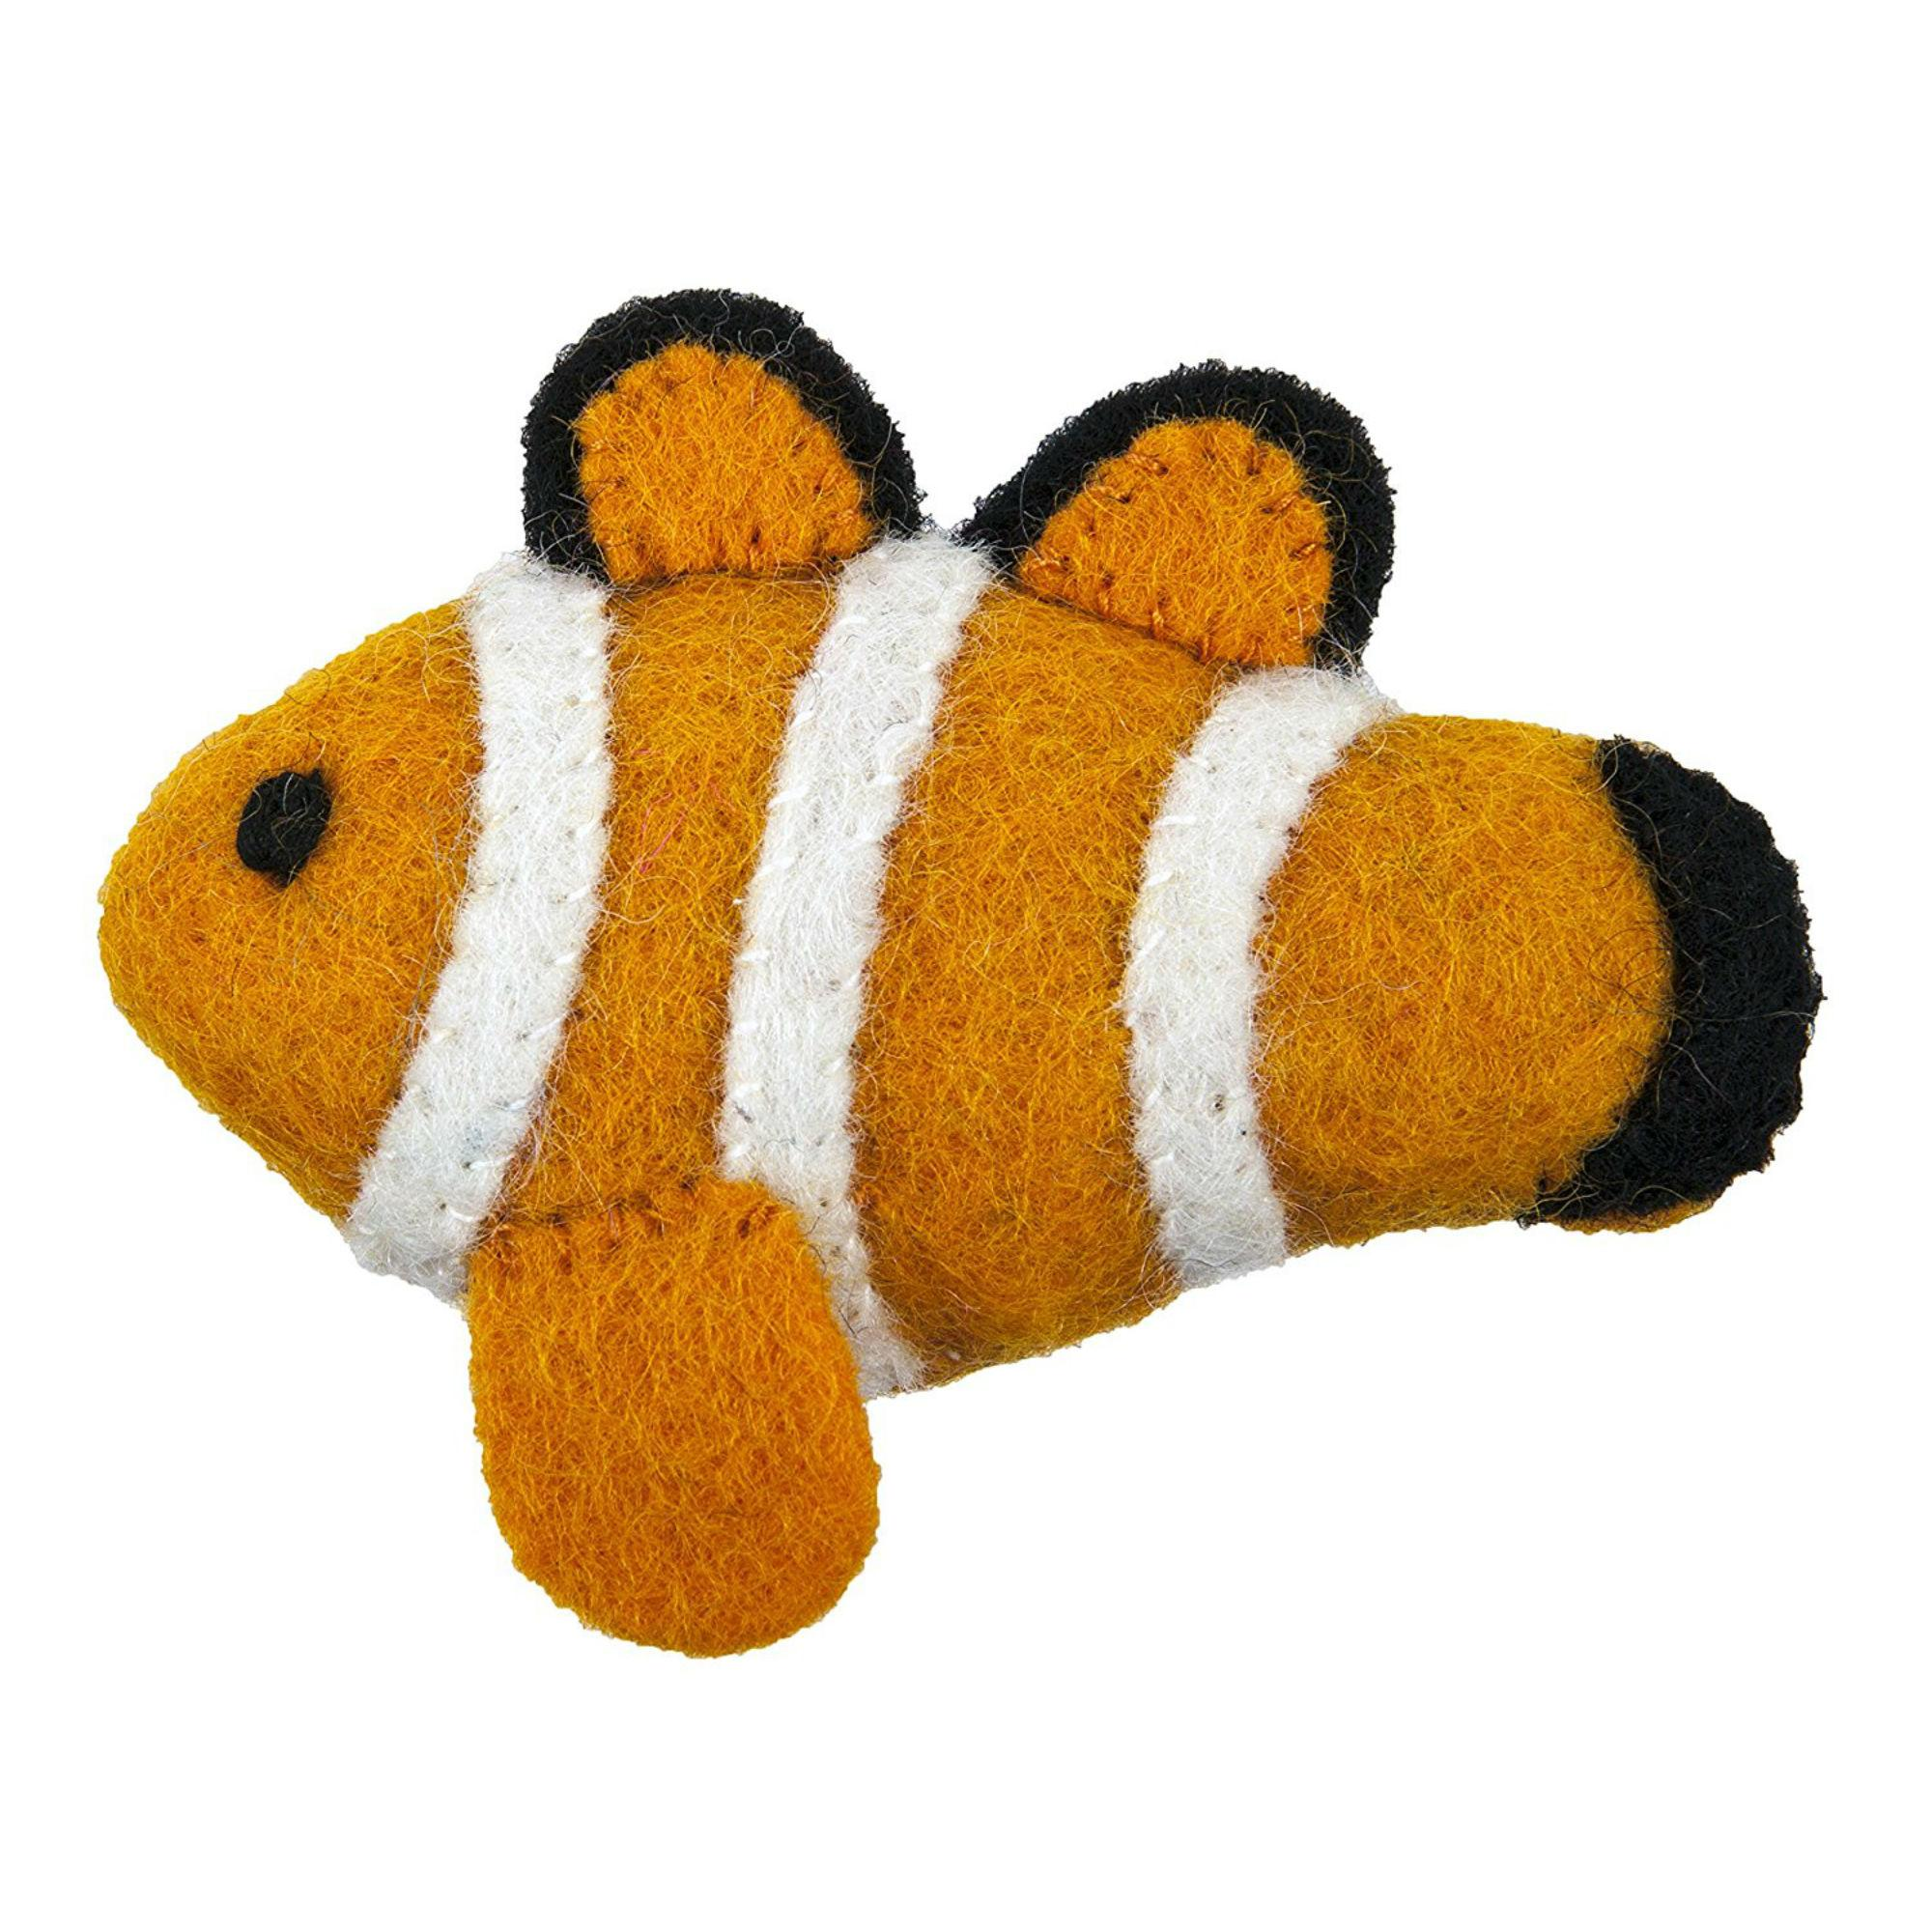 Wooly Wonkz Under The Sea Cat Toy - Clown Fish